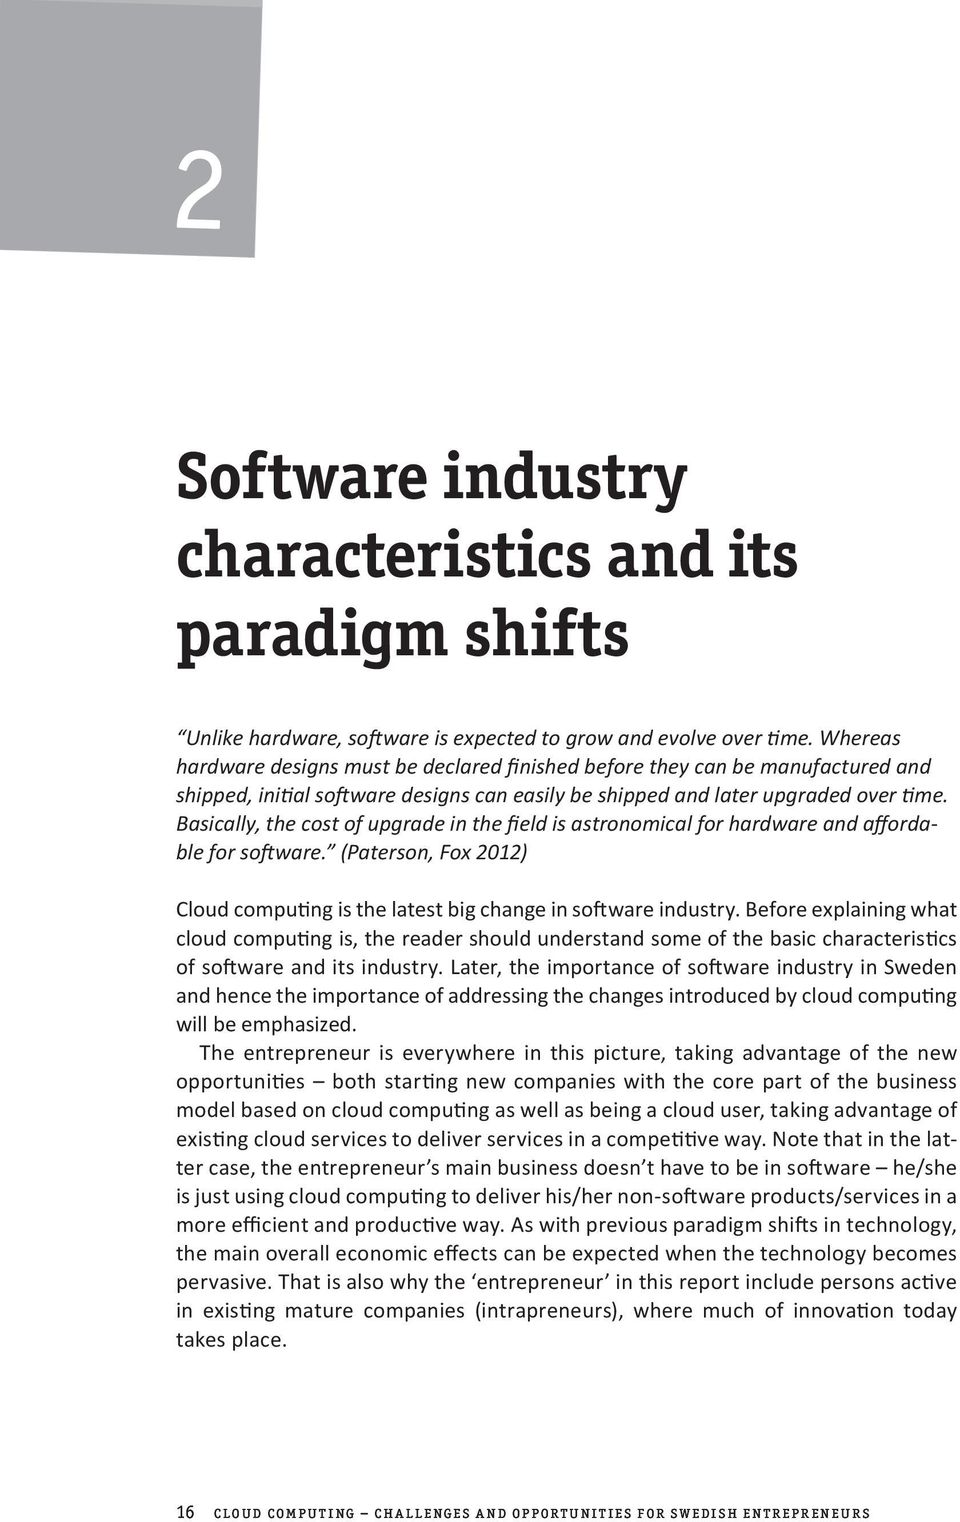 Basically, the cost of upgrade in the field is astronomical for hardware and affordable for software. (Paterson, Fox 2012) Cloud computing is the latest big change in software industry.